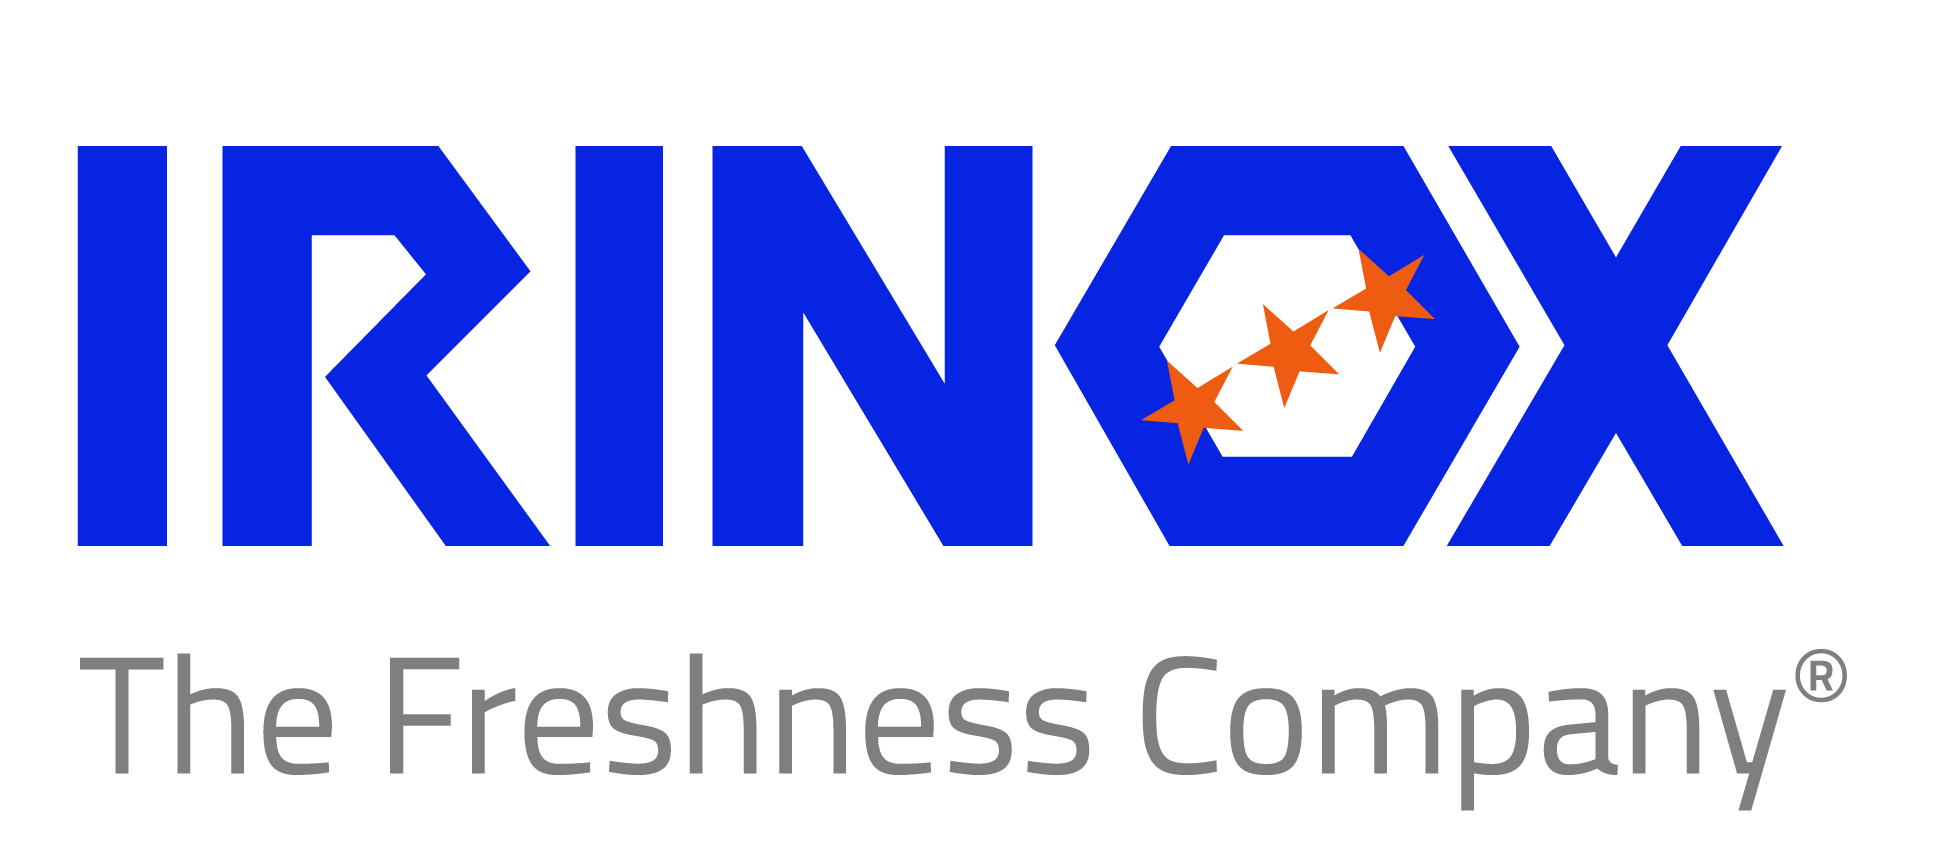 Irinox the freshness company-01